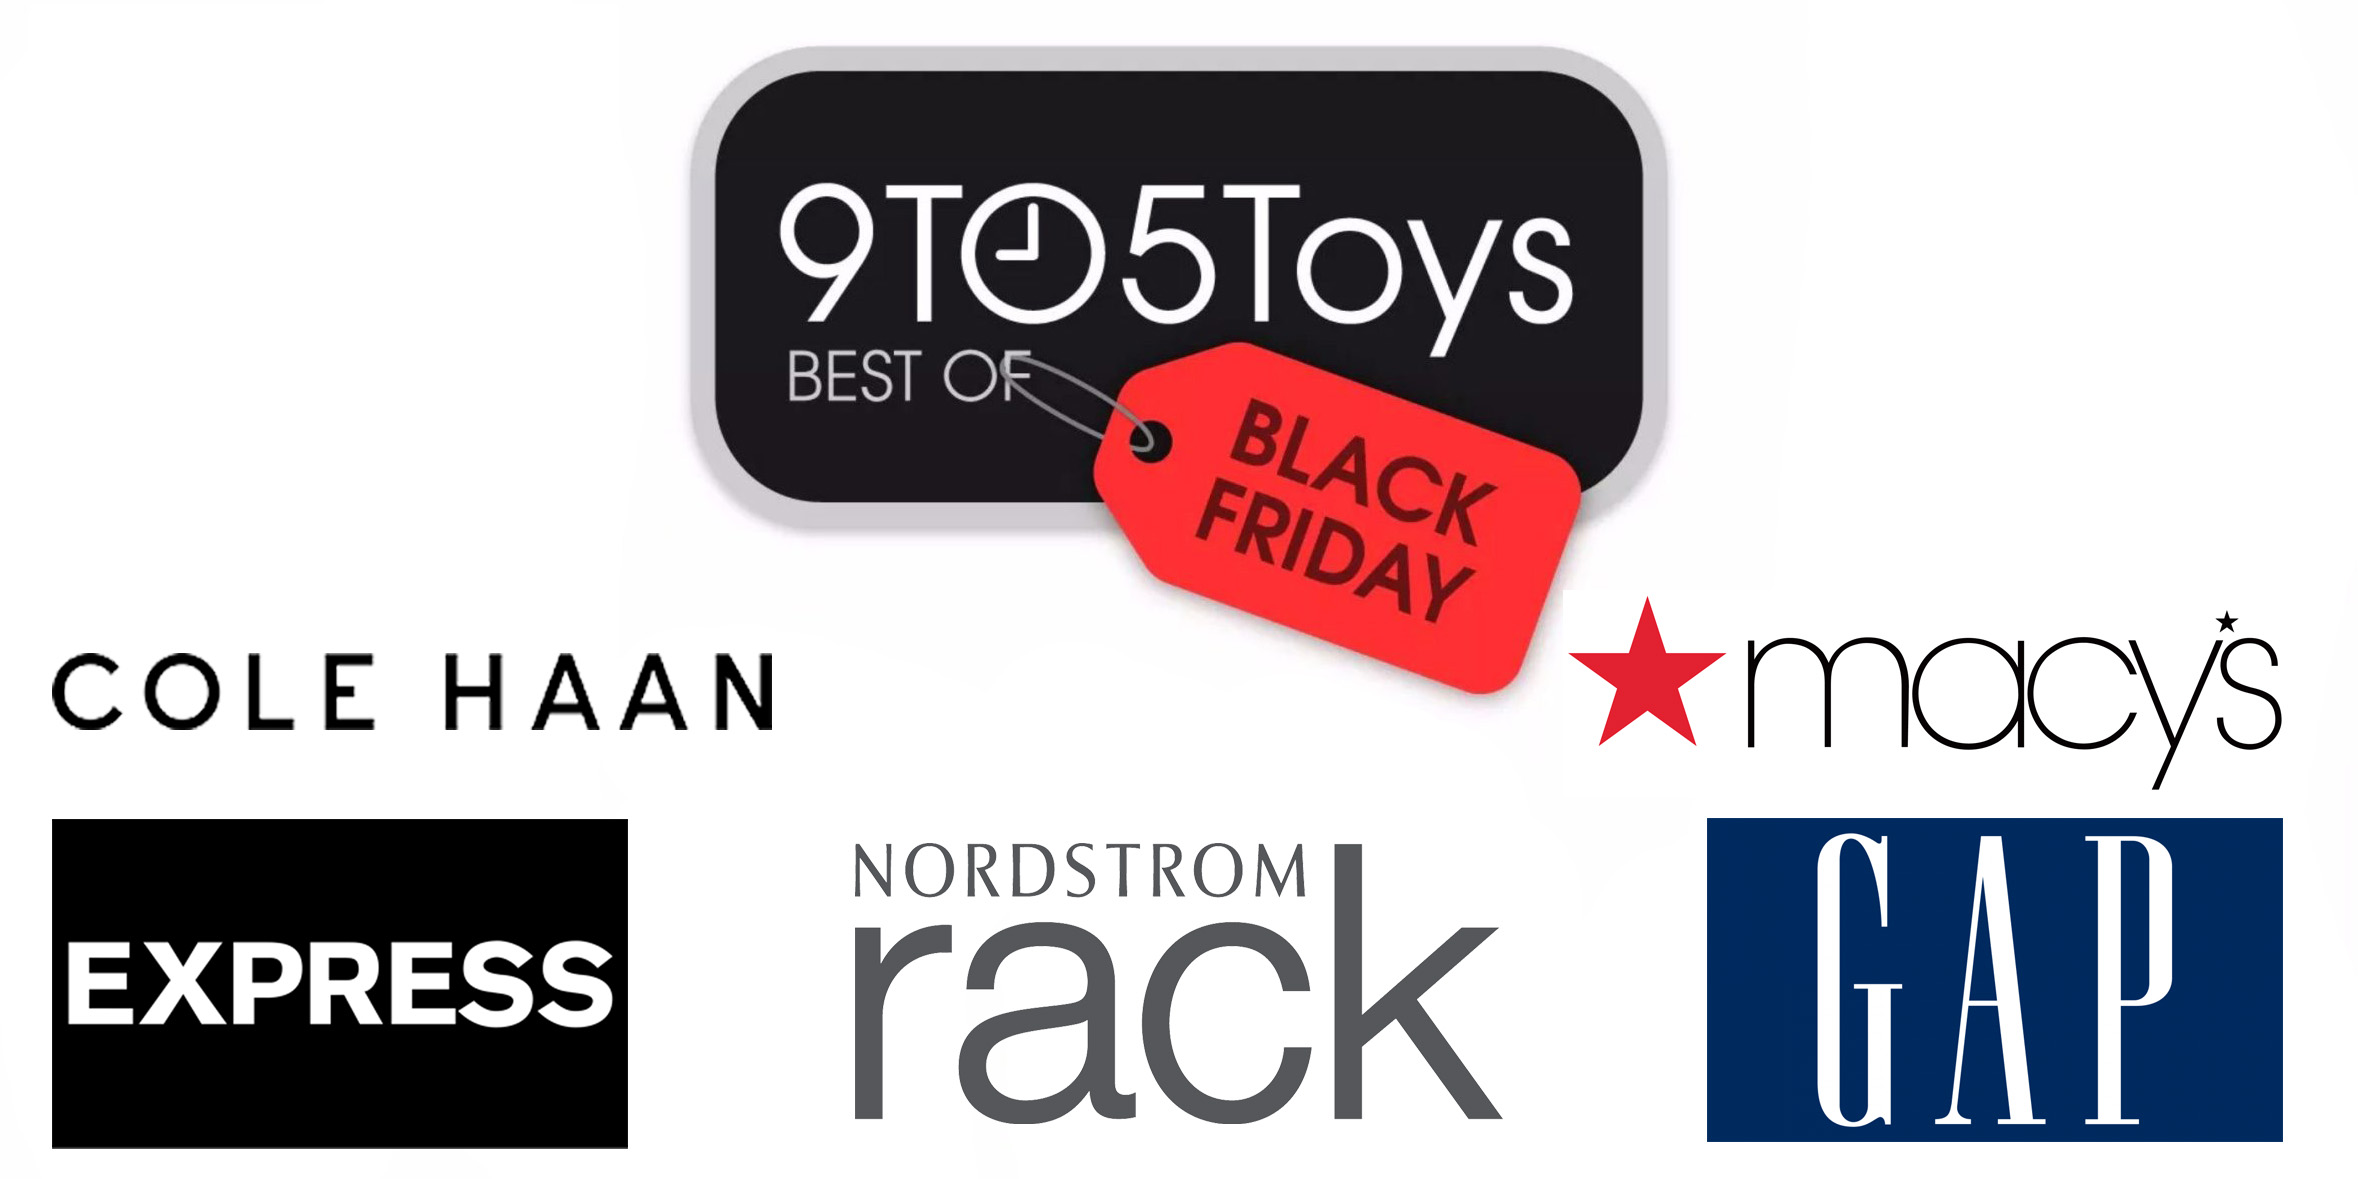 Best Of Black Friday Fashion Deals Cole Haan Nordstrom Rac 9to5toys